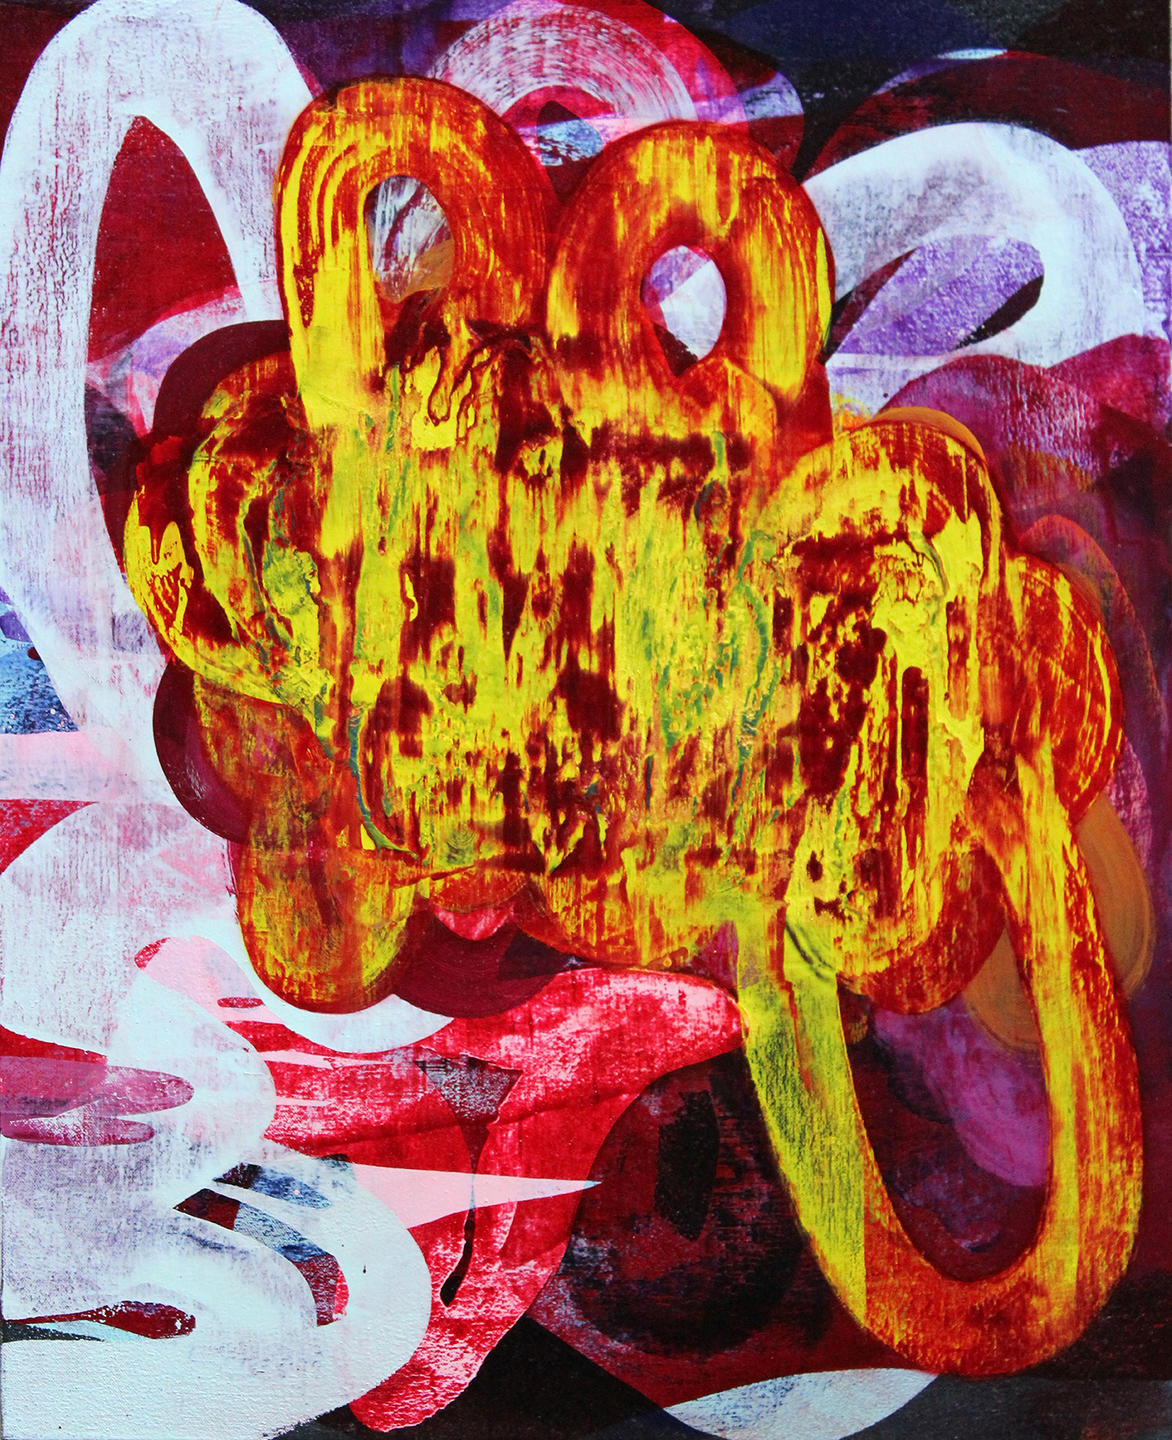 Visions of Excess, 2011, Handmade oil paint on canvas, 24 x 20 inches